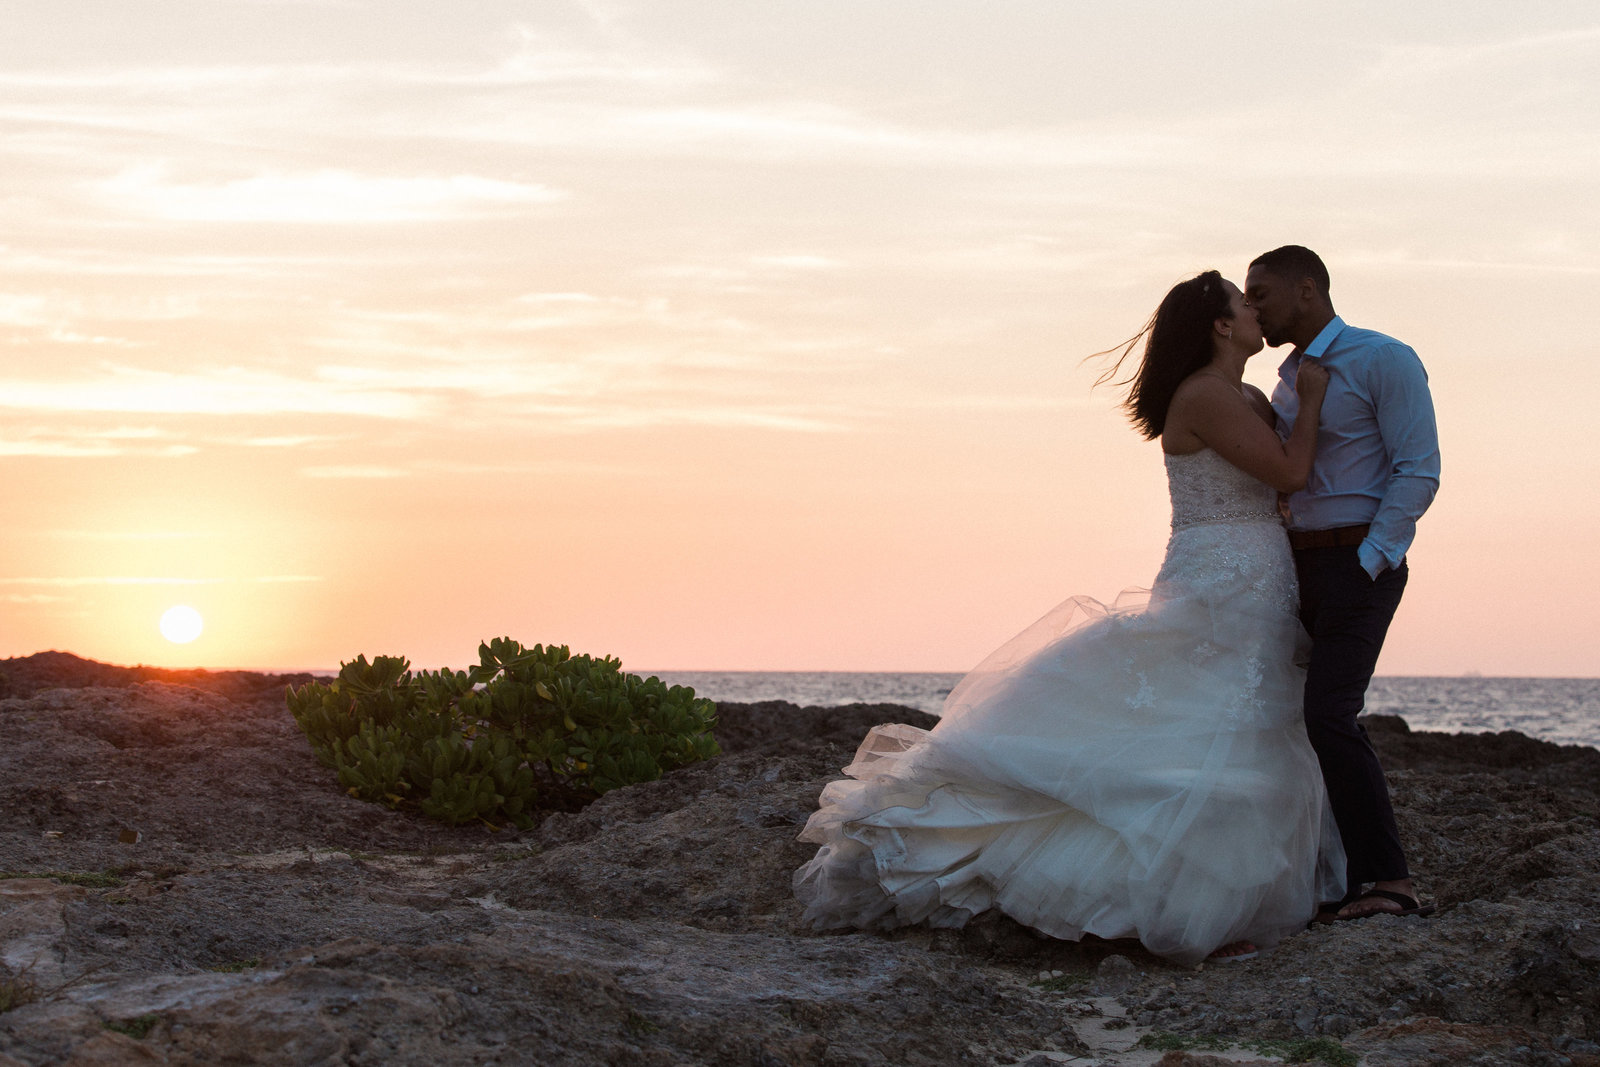 Destination Wedding Photographer Jess Collins Photography  at Jamaica Wedding Venue the Grand Palladium Lady Hamilton in Montego Bay at Palladium Hotel Wedding bride and groom at sunset in jamaica